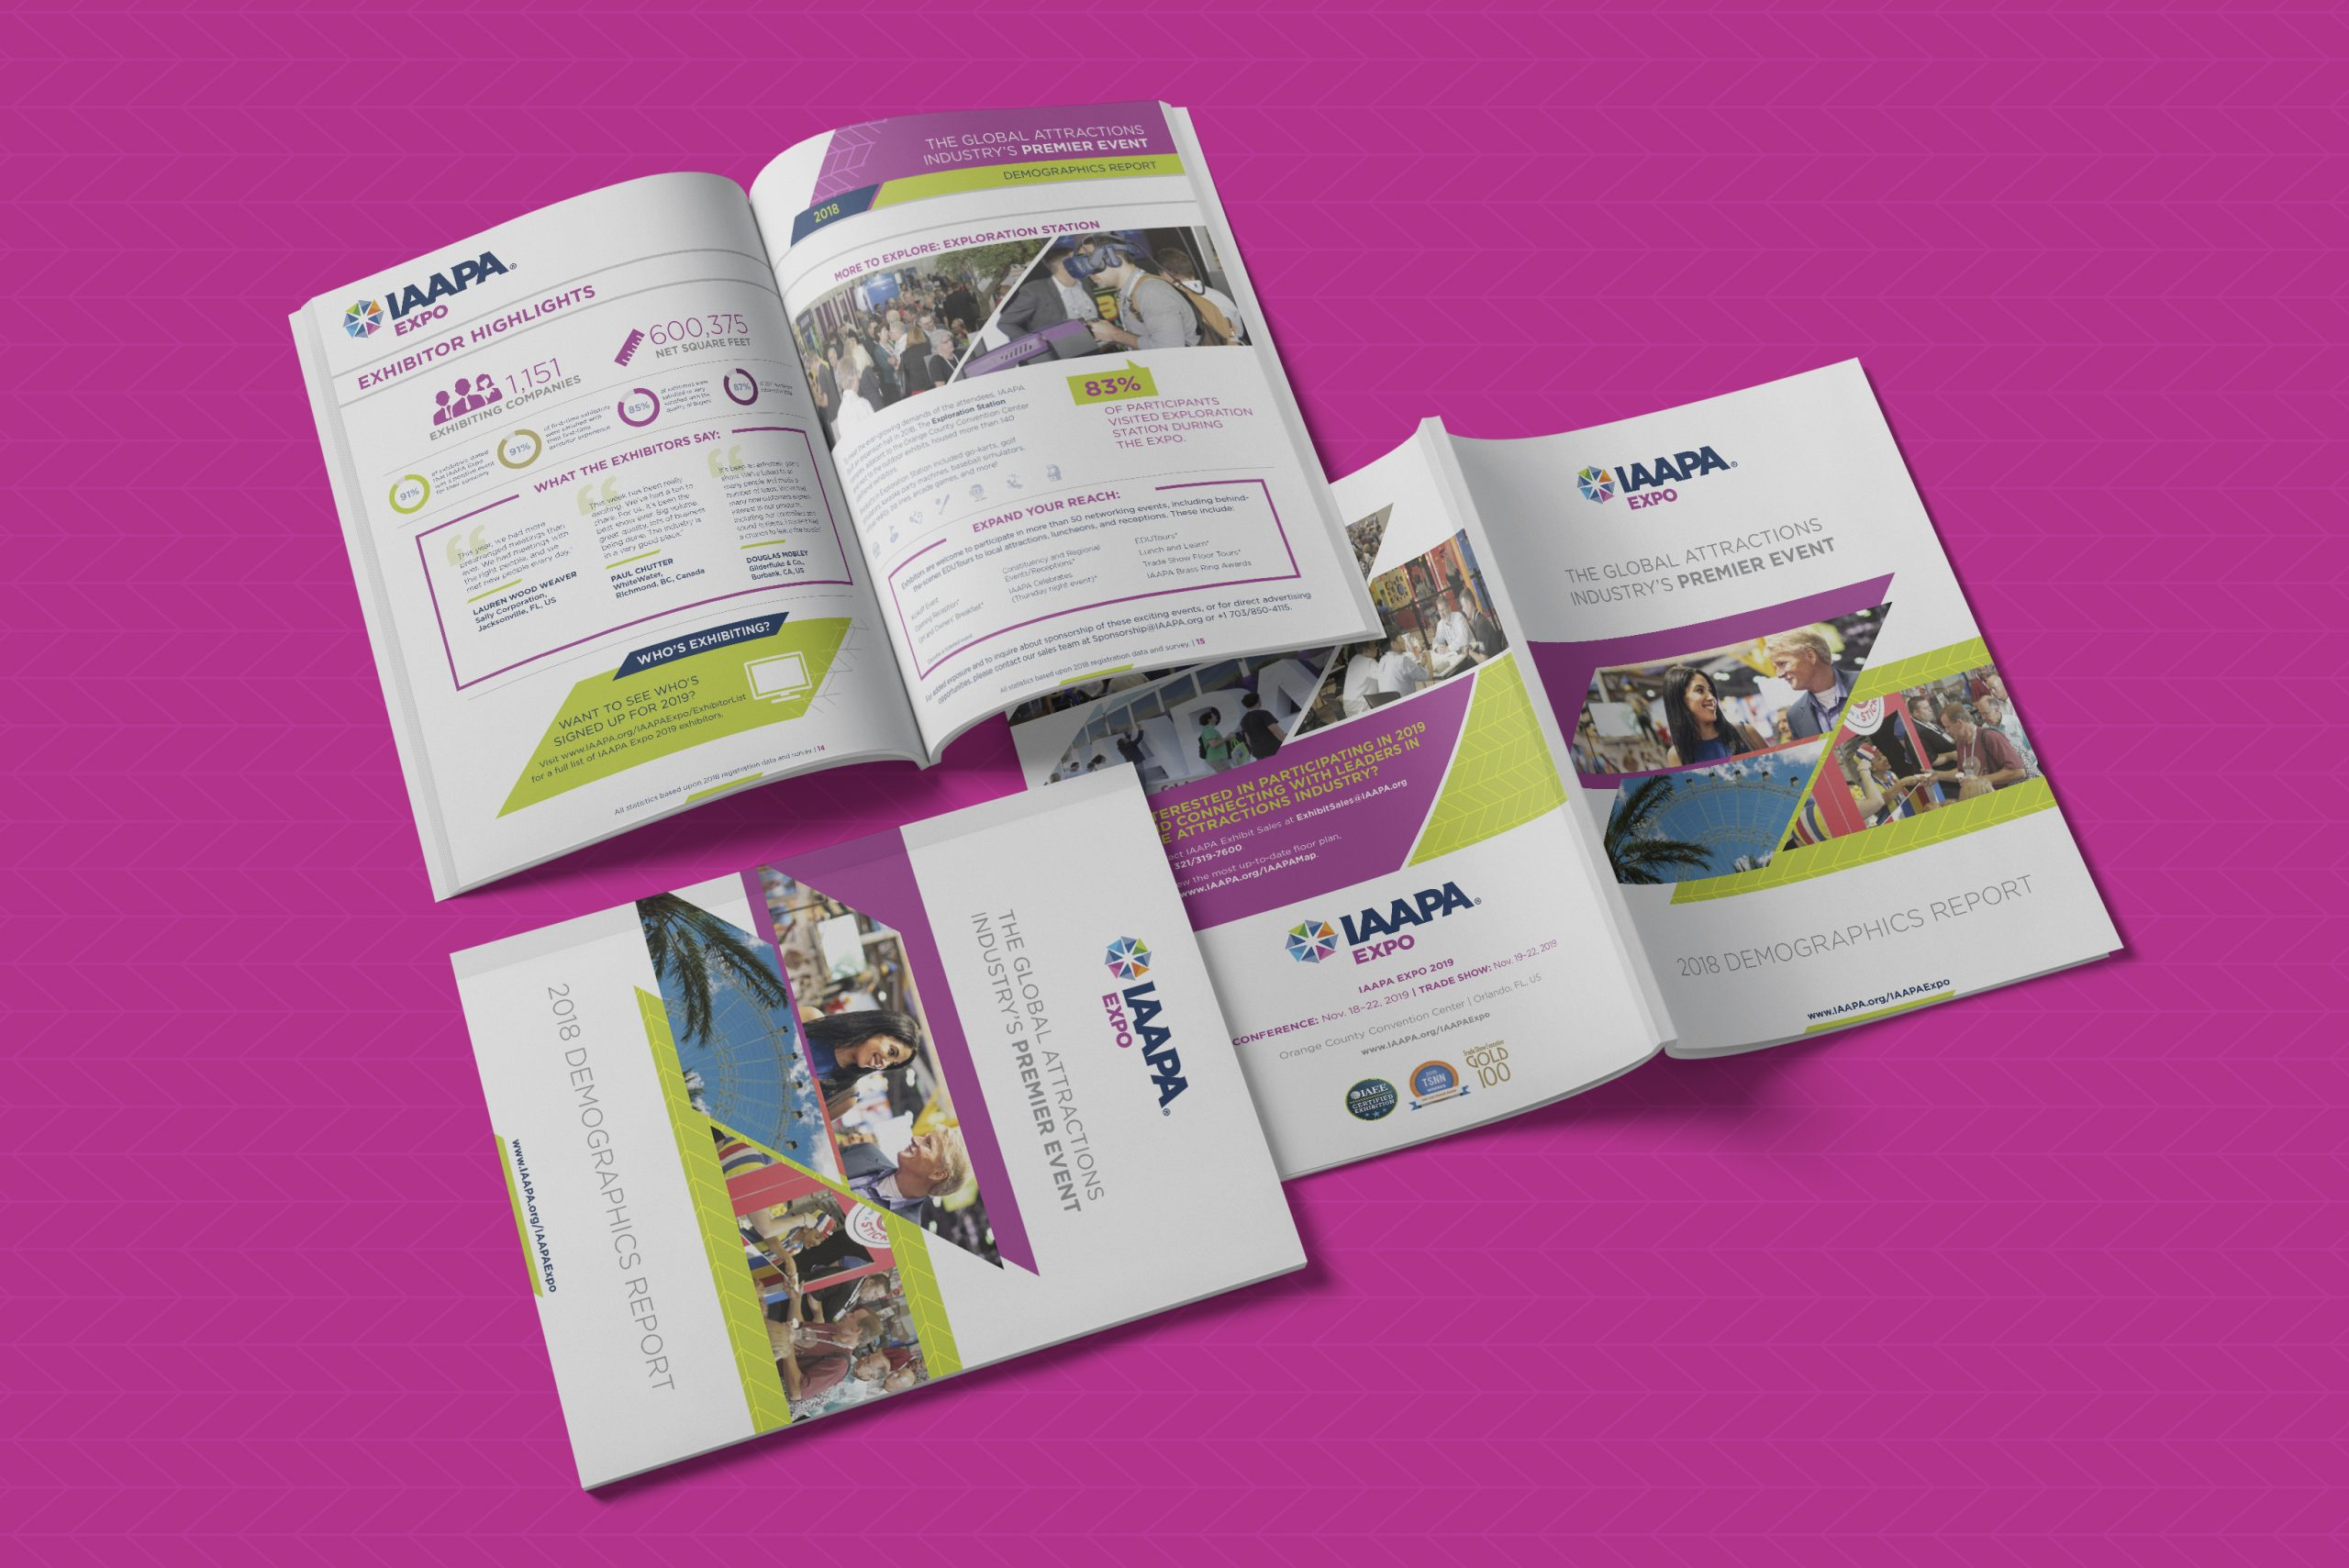 Photo-realistic mock-up of the IAAPA Expo 2018 Demographics Print Report showing the cover, the Exhibitor Highlights interior spread, and the cover spread on a patterned purple background.